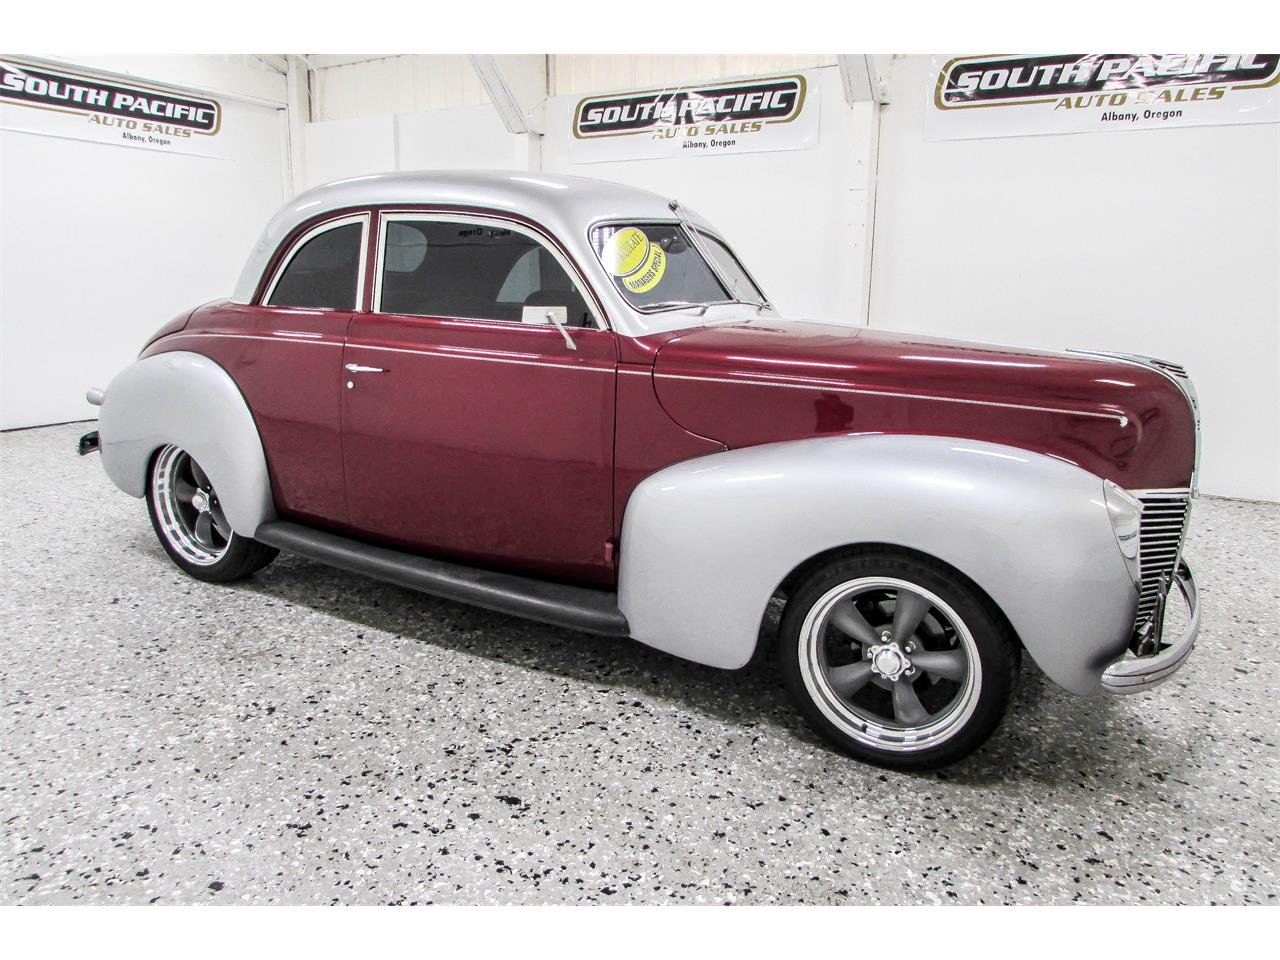 Large Picture of 1939 Coupe located in ALBANY Oregon Offered by a Private Seller - N6LJ